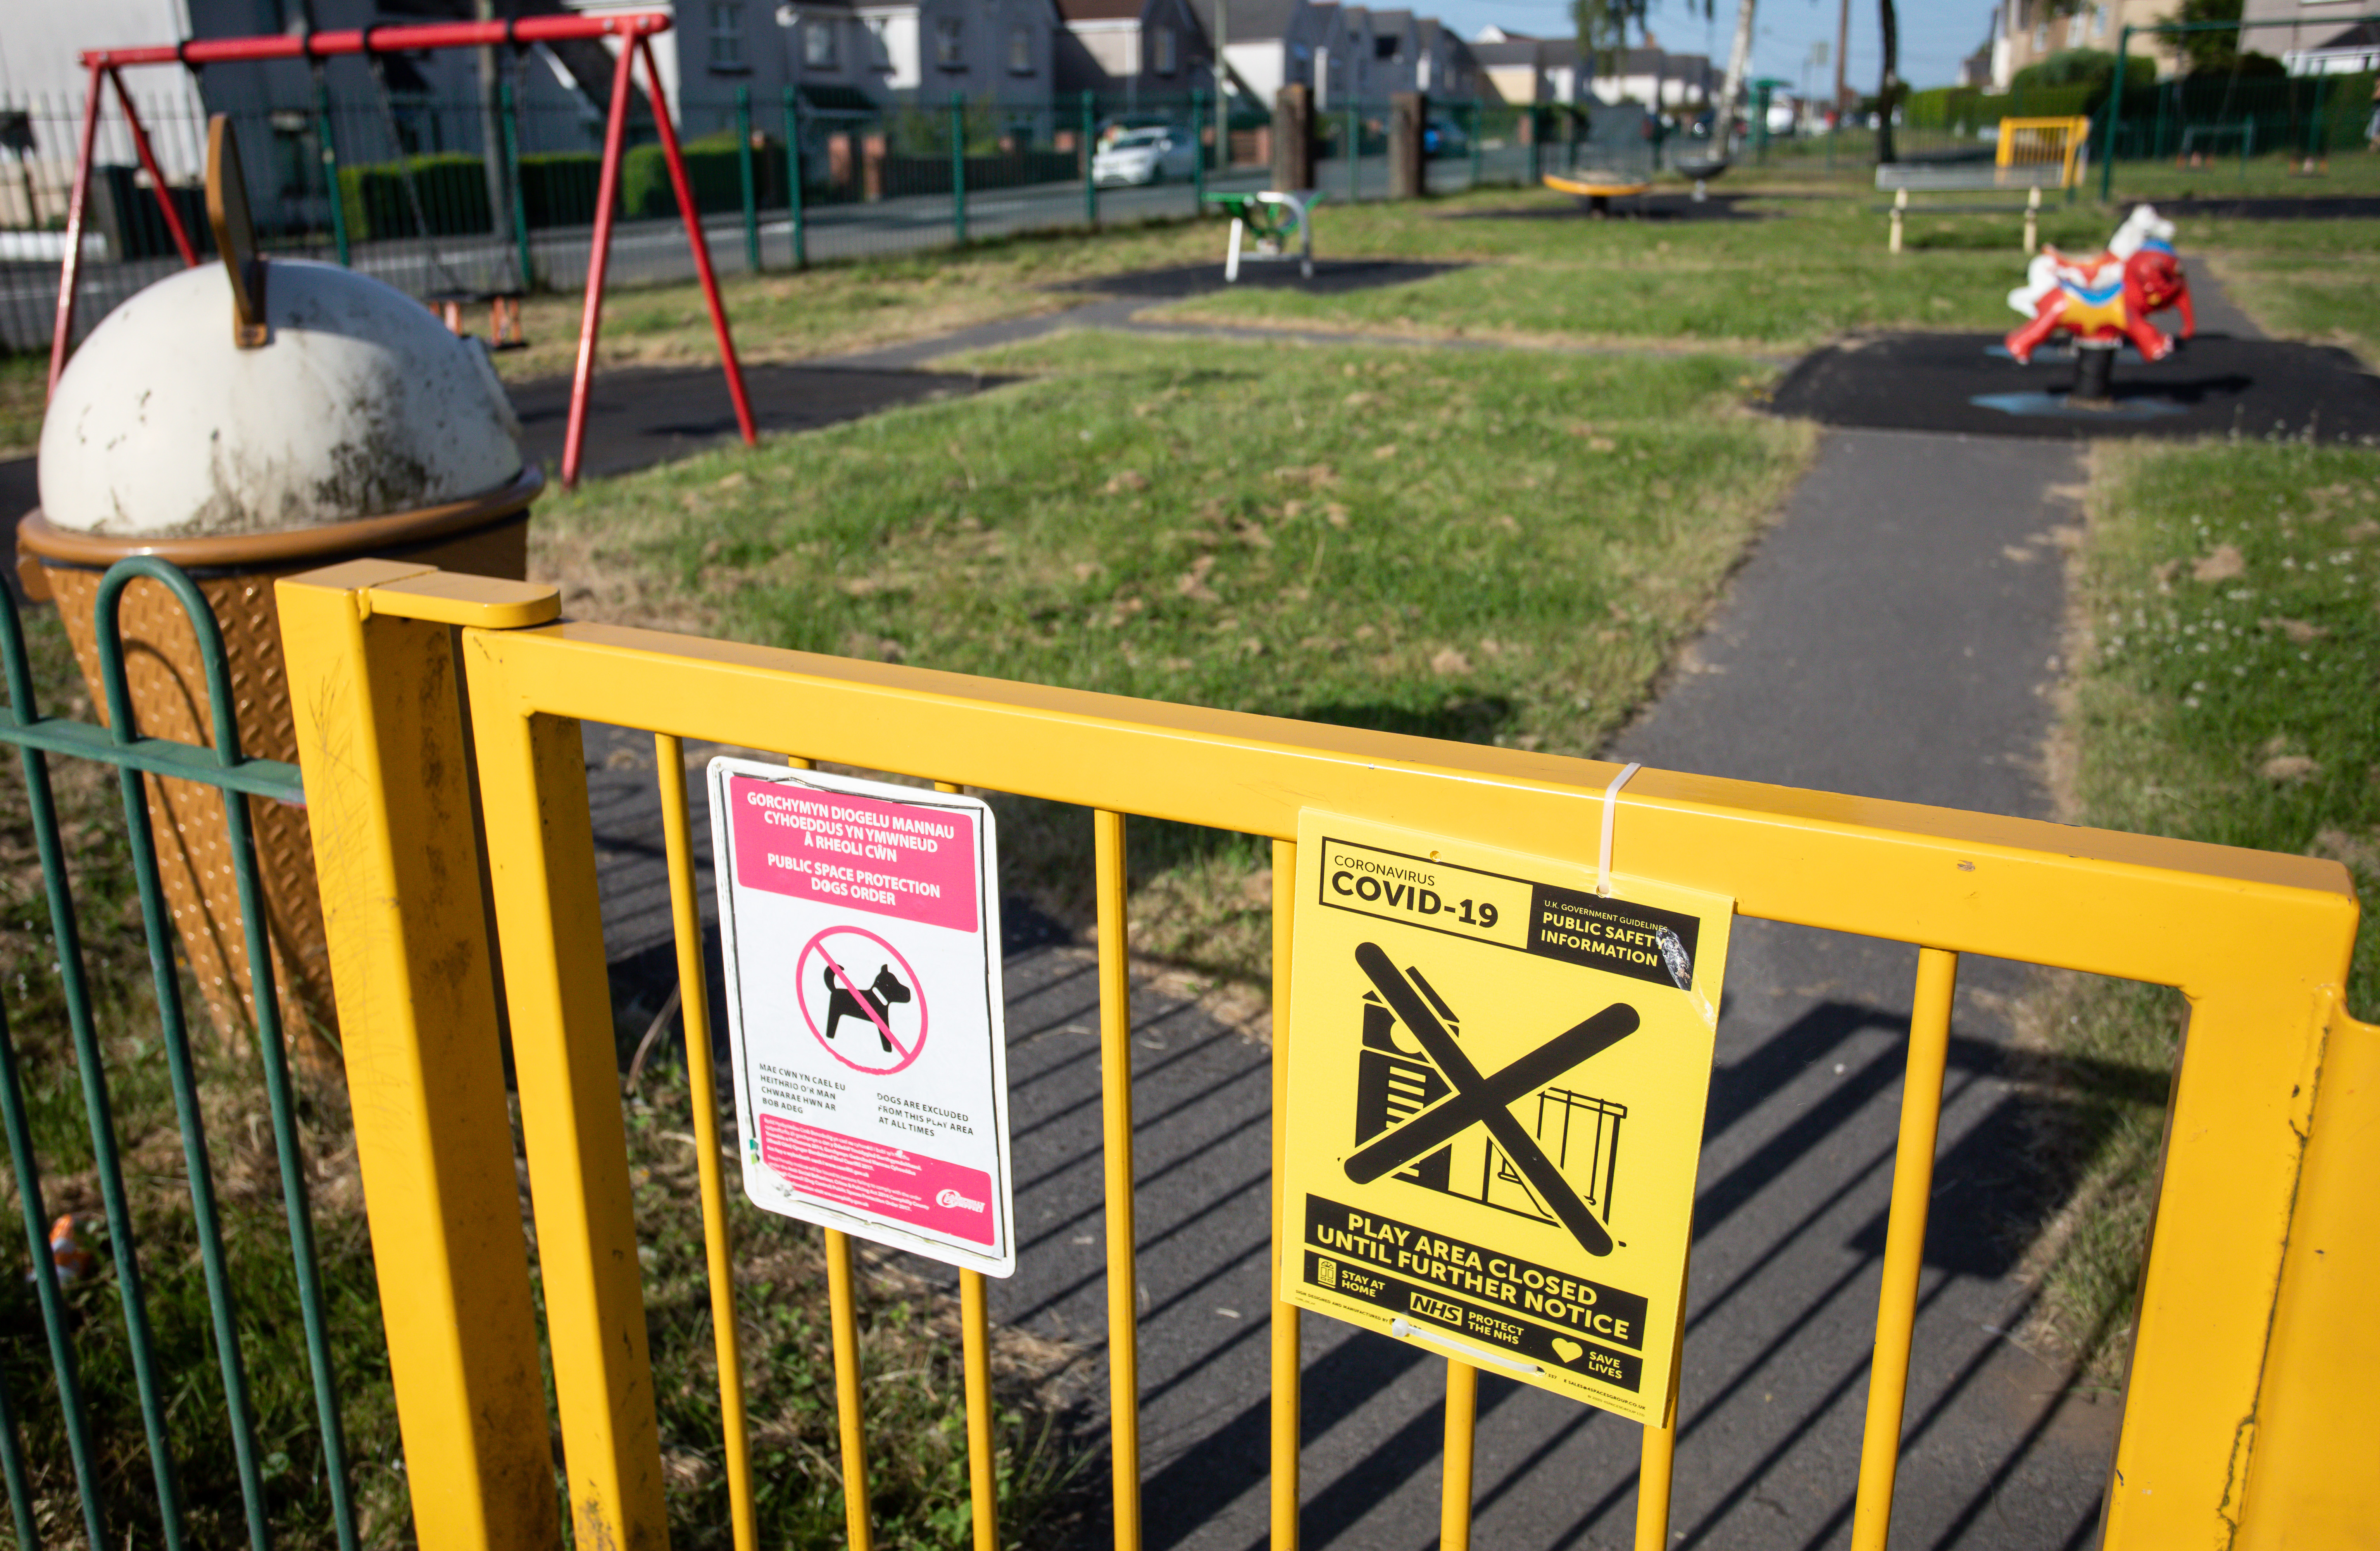 BLACKWOOD, WALES - MAY 28:  A general view of an entrance to a children's play area where restrictions on entrance remains enforce since the start of the pandemicon May 28, 2020 in Blackwood, Wales, United Kingdom. The British government continues to ease the coronavirus lockdown by announcing schools will open to reception year pupils plus years one and six from June 1st. Open-air markets and car showrooms can also open from the same date.  (Photo by Huw Fairclough/Getty Images)